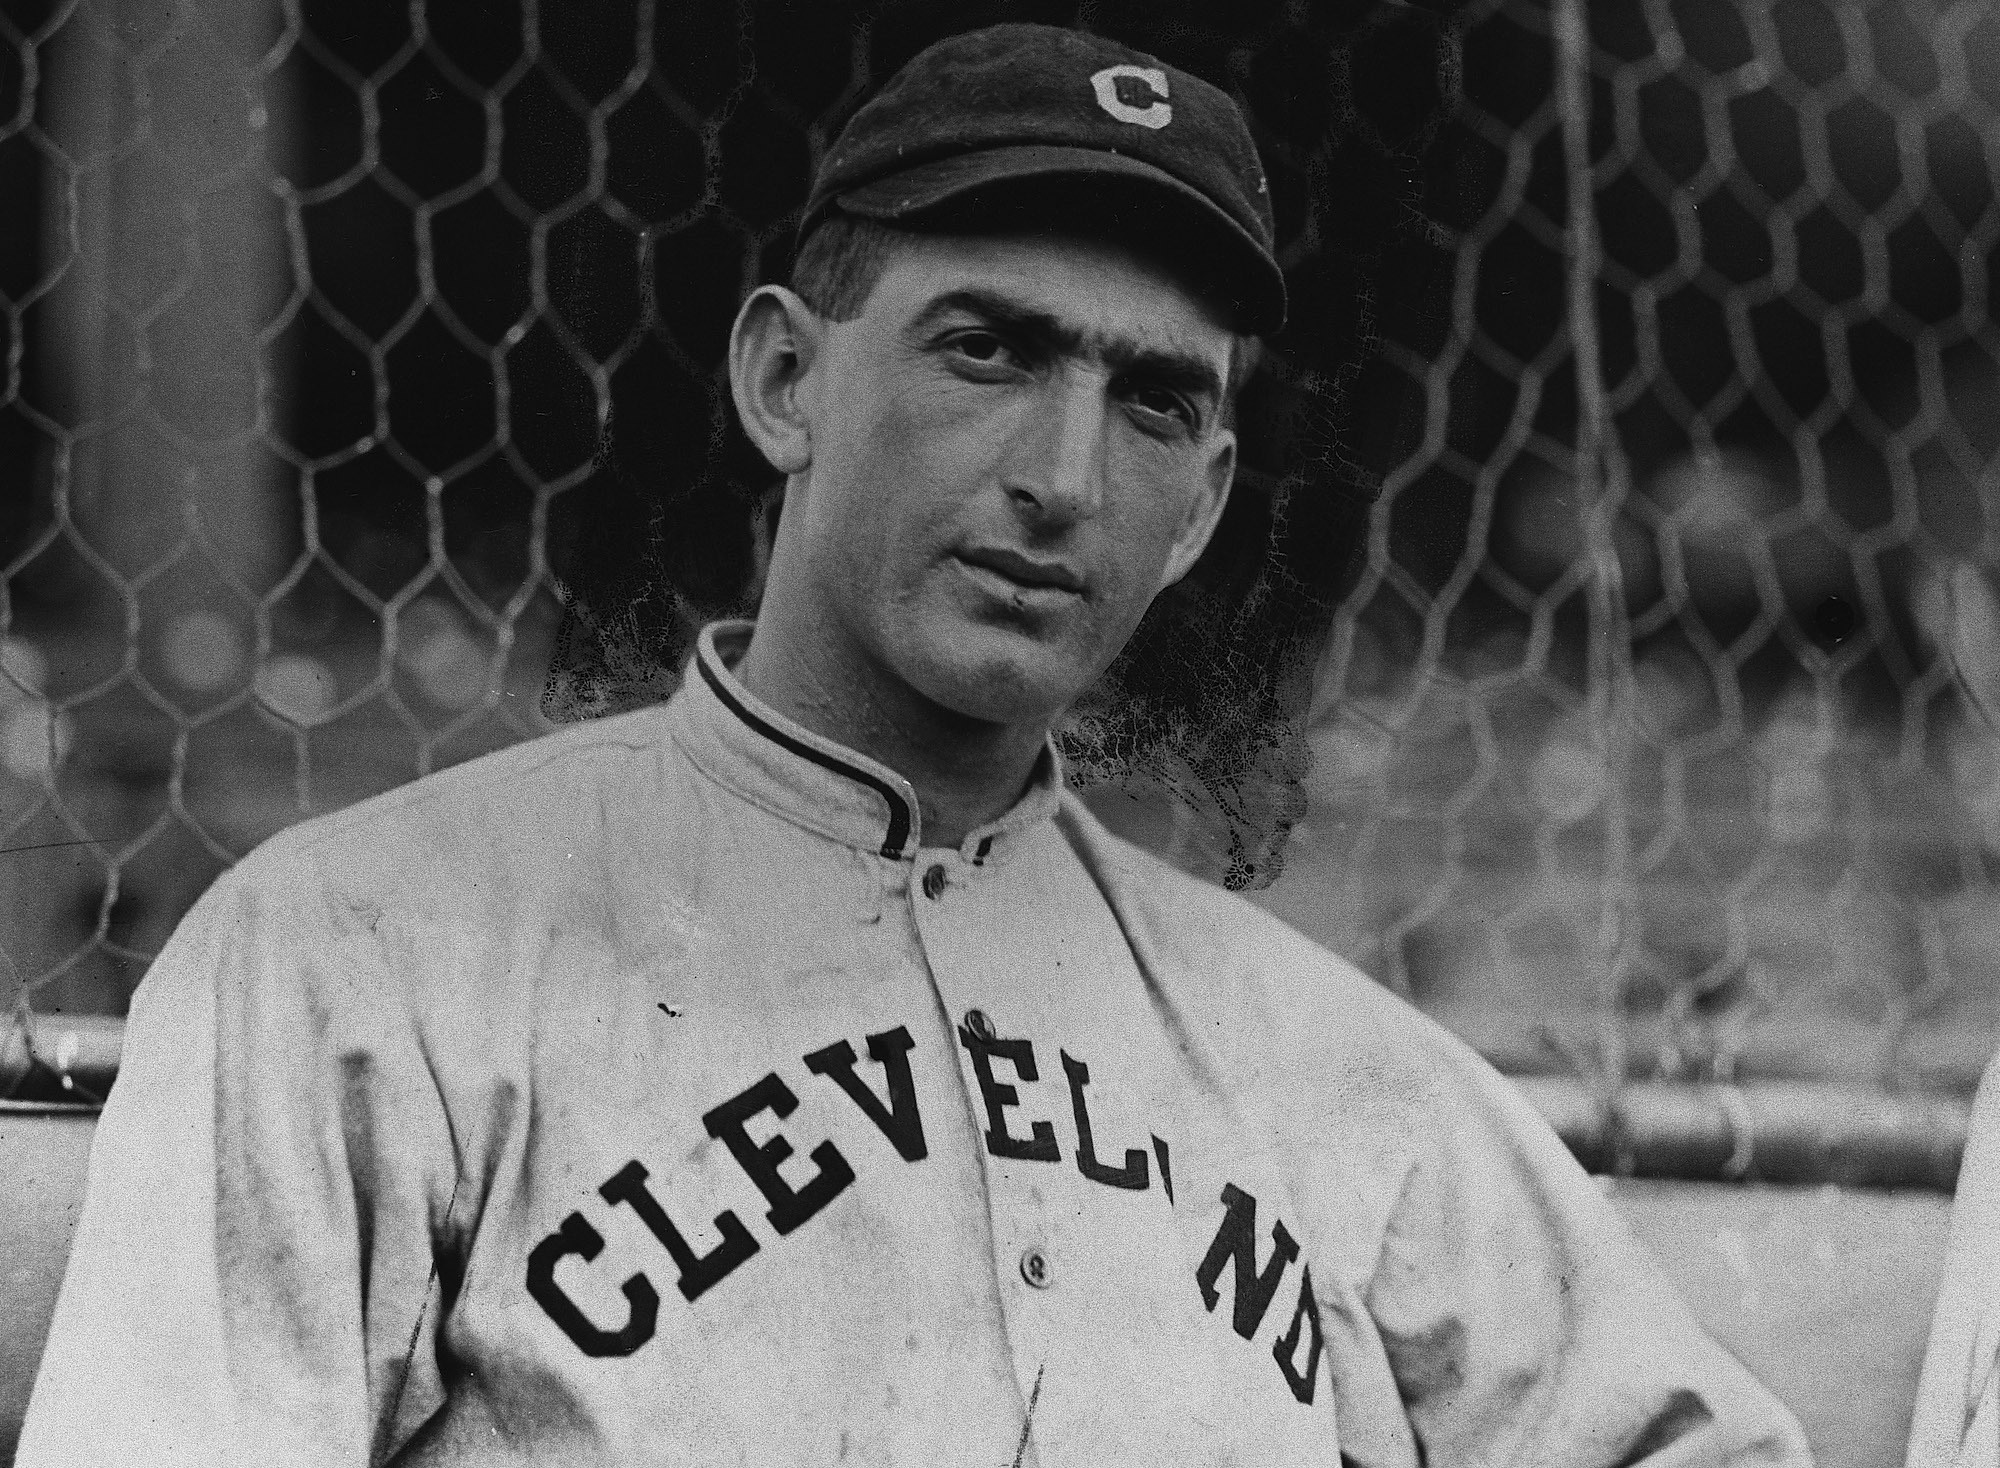 an analysis of the incident with shoeless joe jackson in 1919 Shoeless joe jackson and sports writer furman bisher, 1949  jackson's  firstperson account of the 1919 world series fix and his  devoted most of a  chapter to jackson's request, suggesting that this incident, if verified, would have   for a detailed analysis of this episode, see chapter 4 of carney's burying the  black sox.